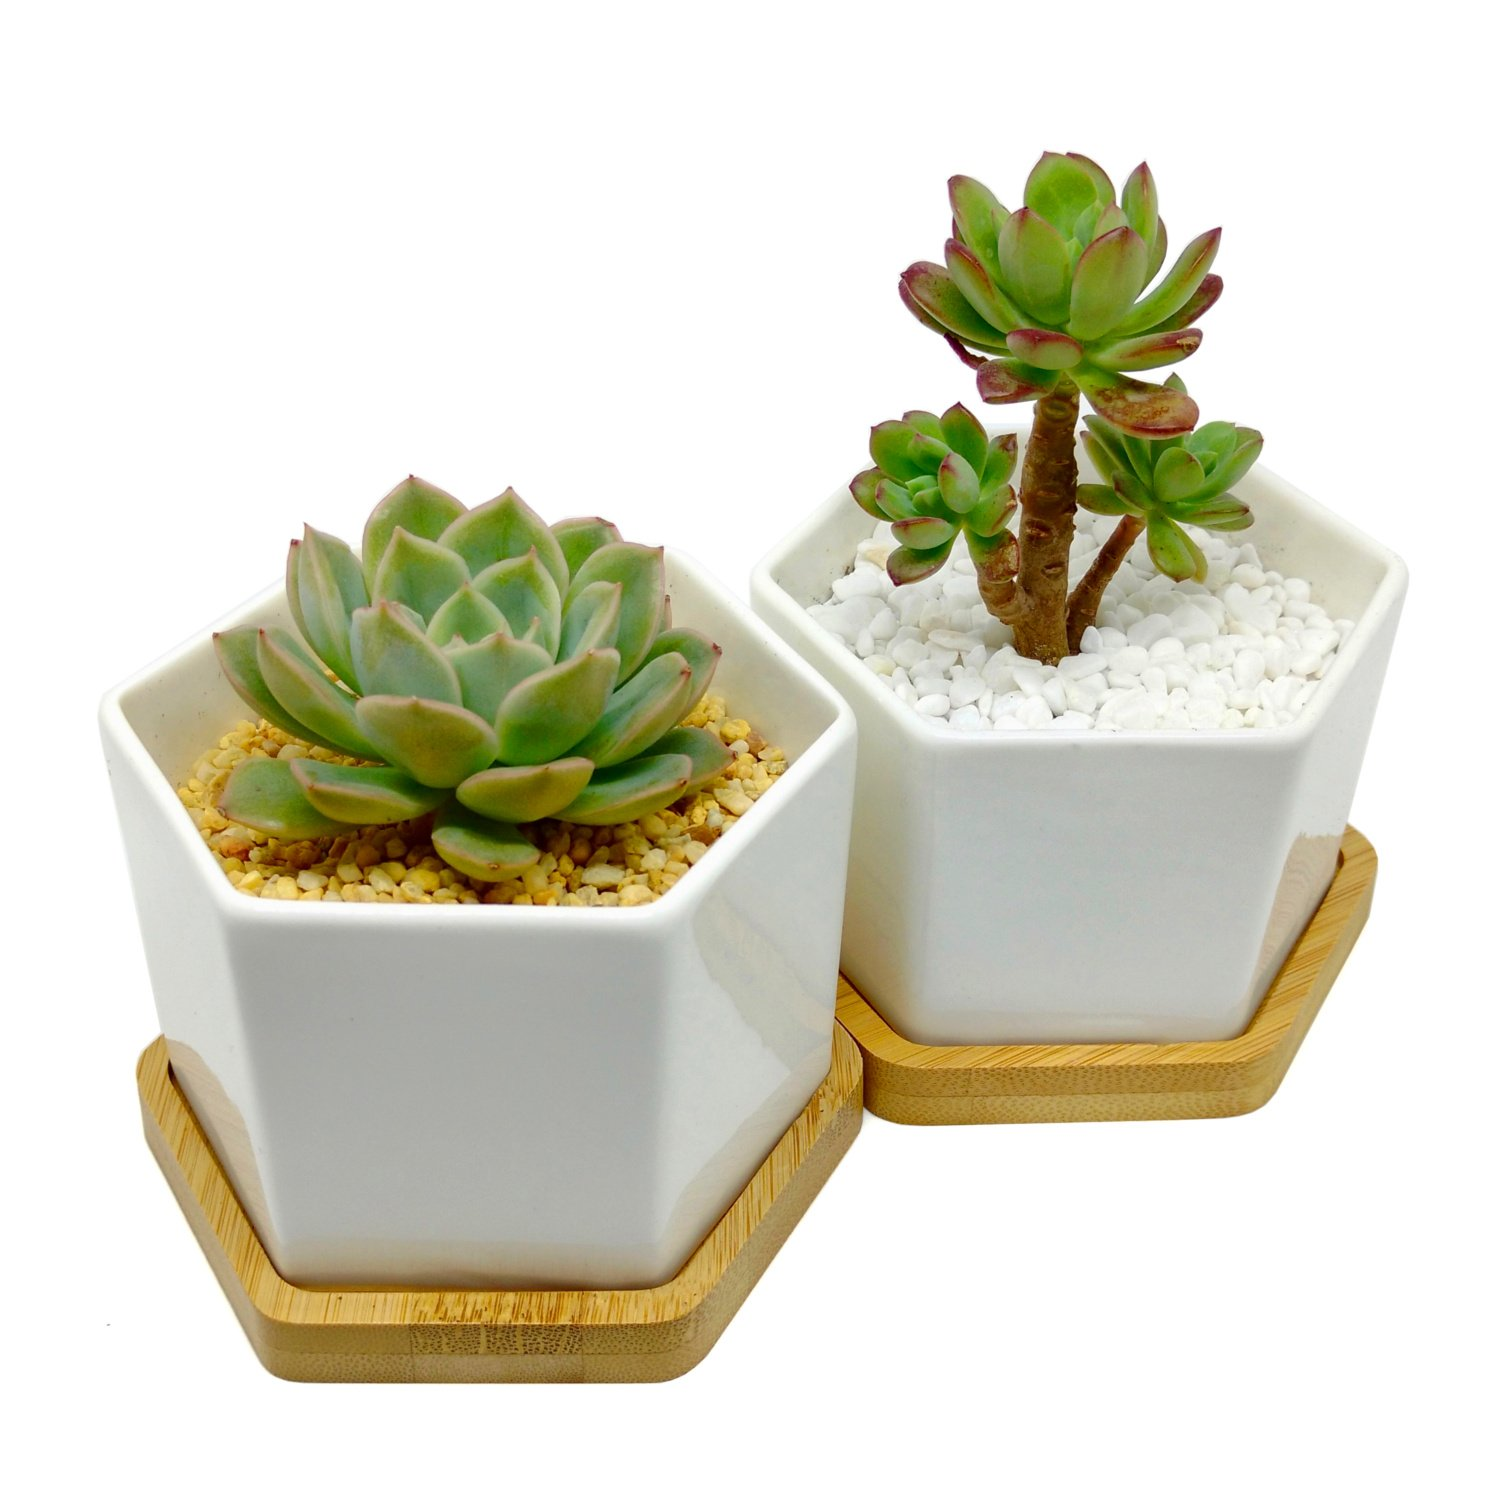 4-Inch Hexagonal White Ceramic Succulent Planter with Bamboo Tray | Set of Two | Minimalist Design